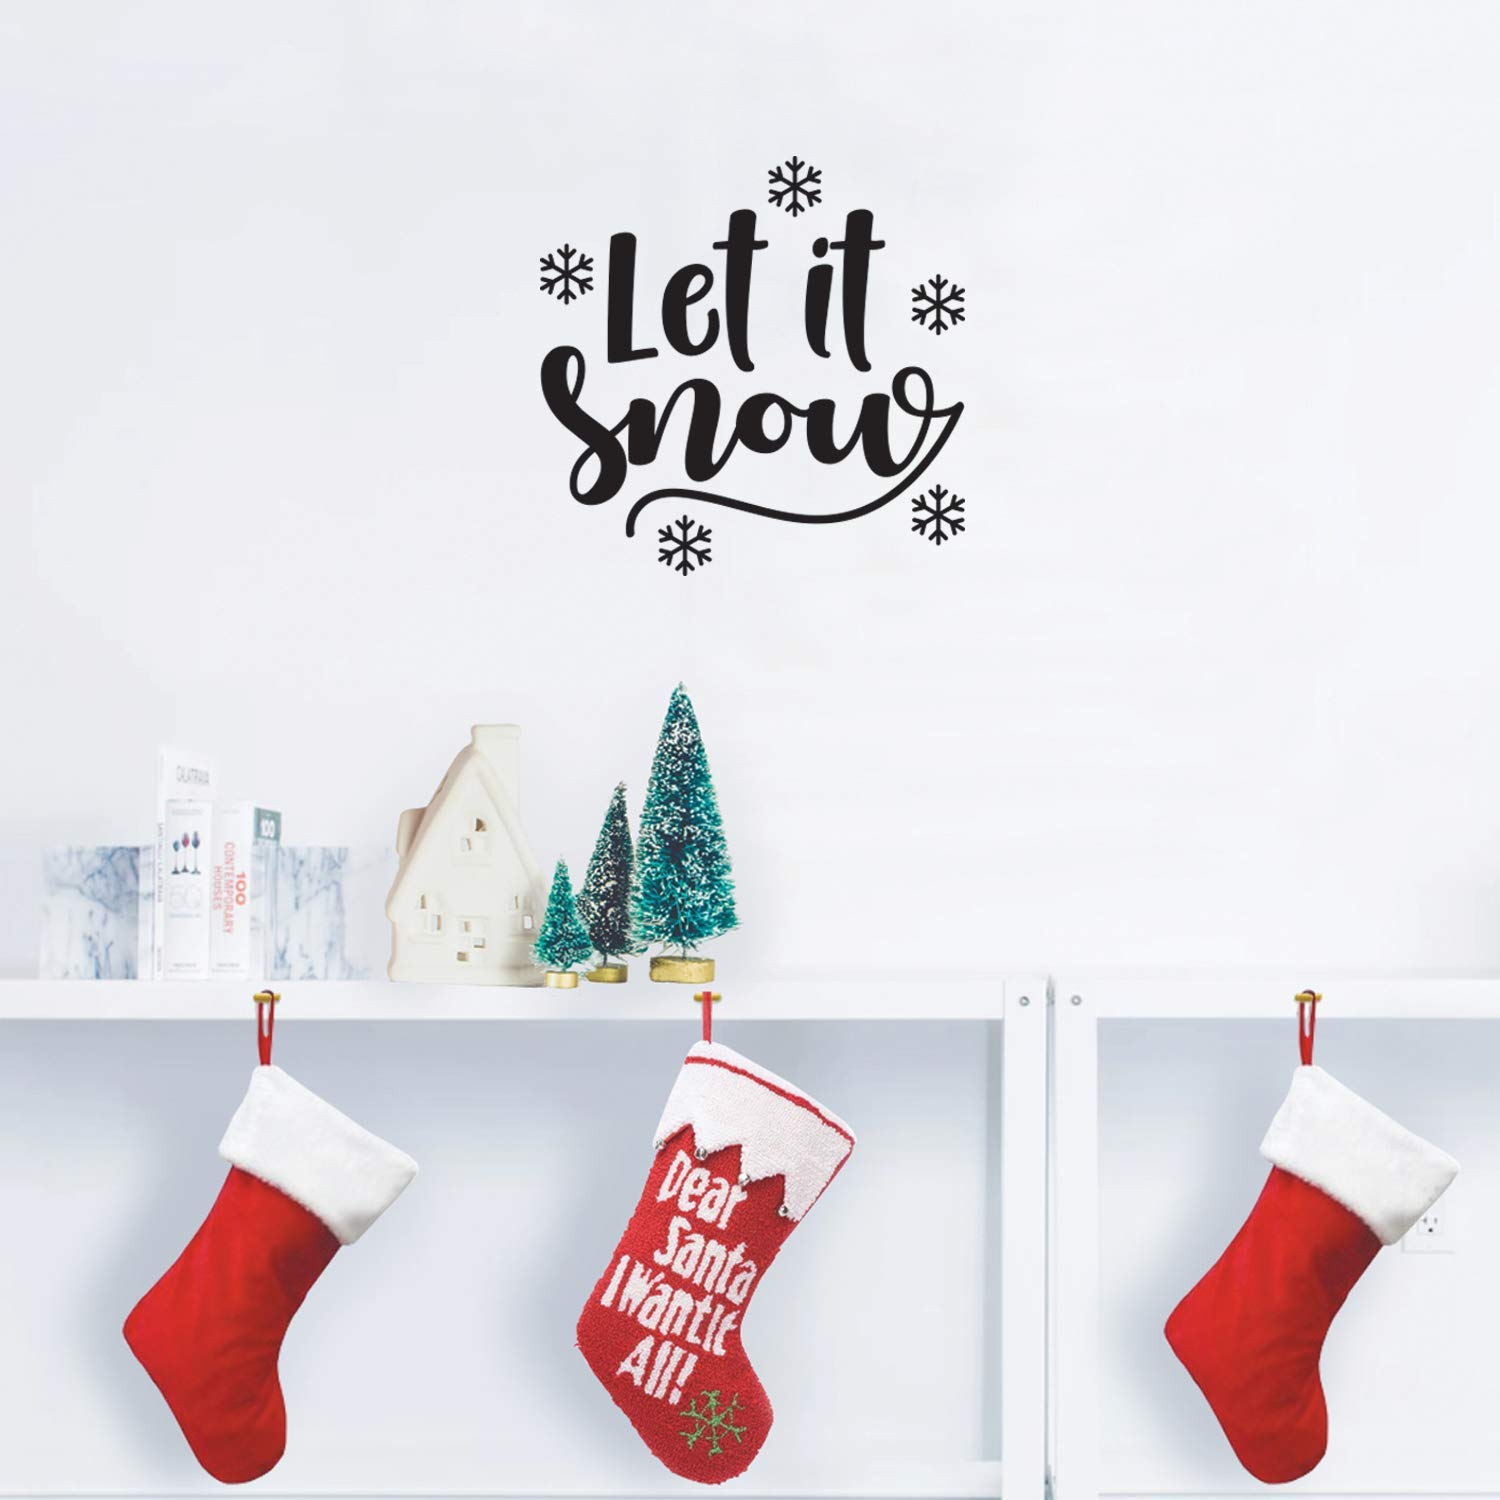 """Vinyl Wall Art Decal - Let It Snow - 17"""" x 17"""" - Cute Christmas Winter Quote for Home Living Room Front Door Coffee Shop Store Seasonal Decoration Sticker (Black)"""